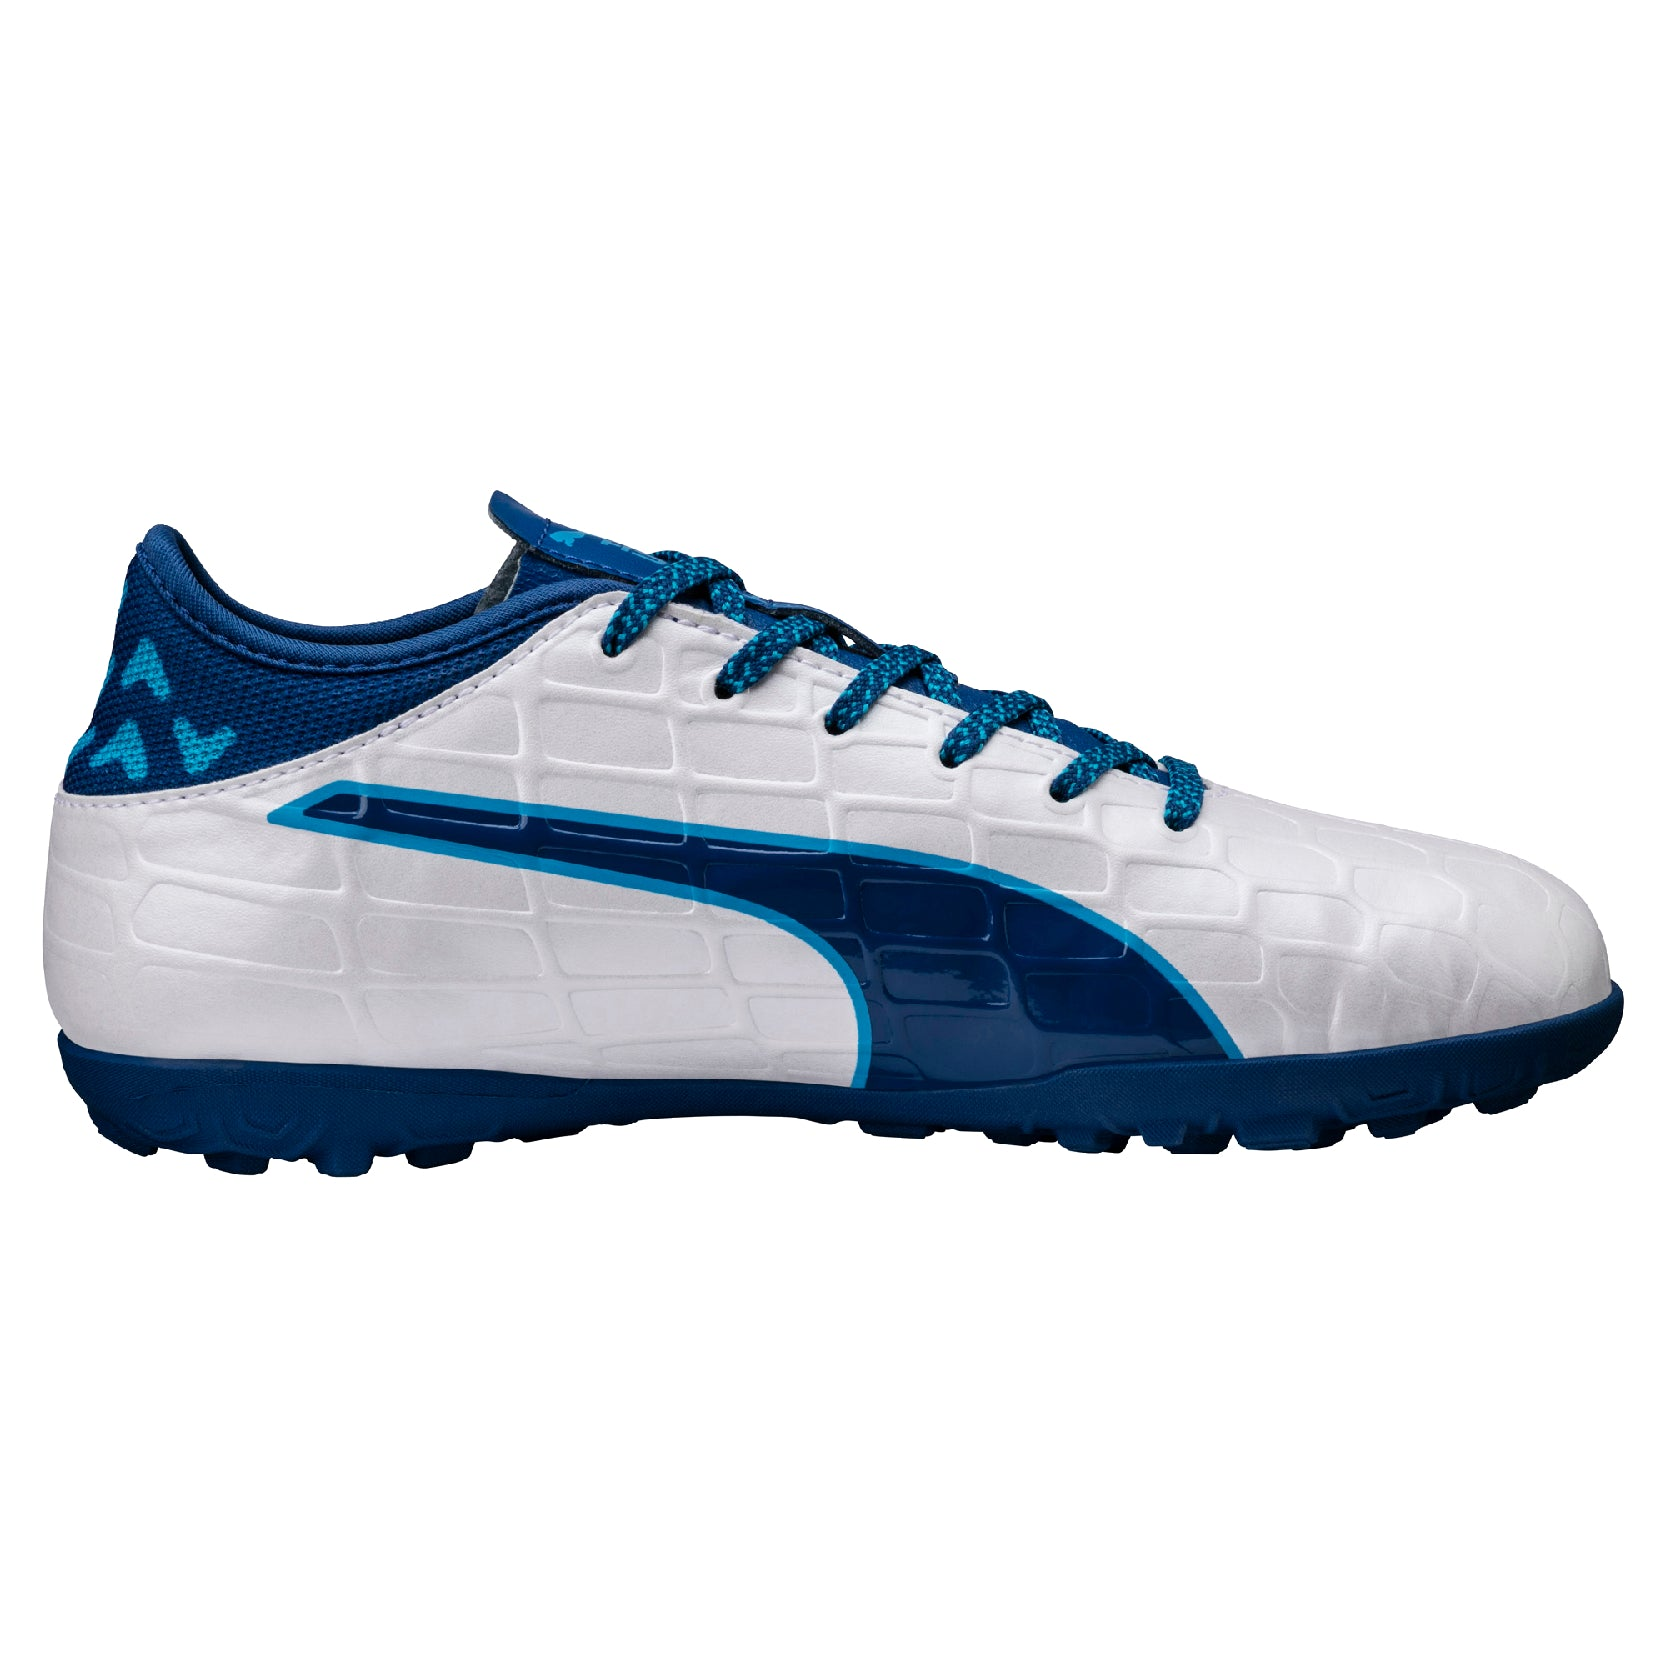 Puma Jr. evoTOUCH 3 Turf Football Boots